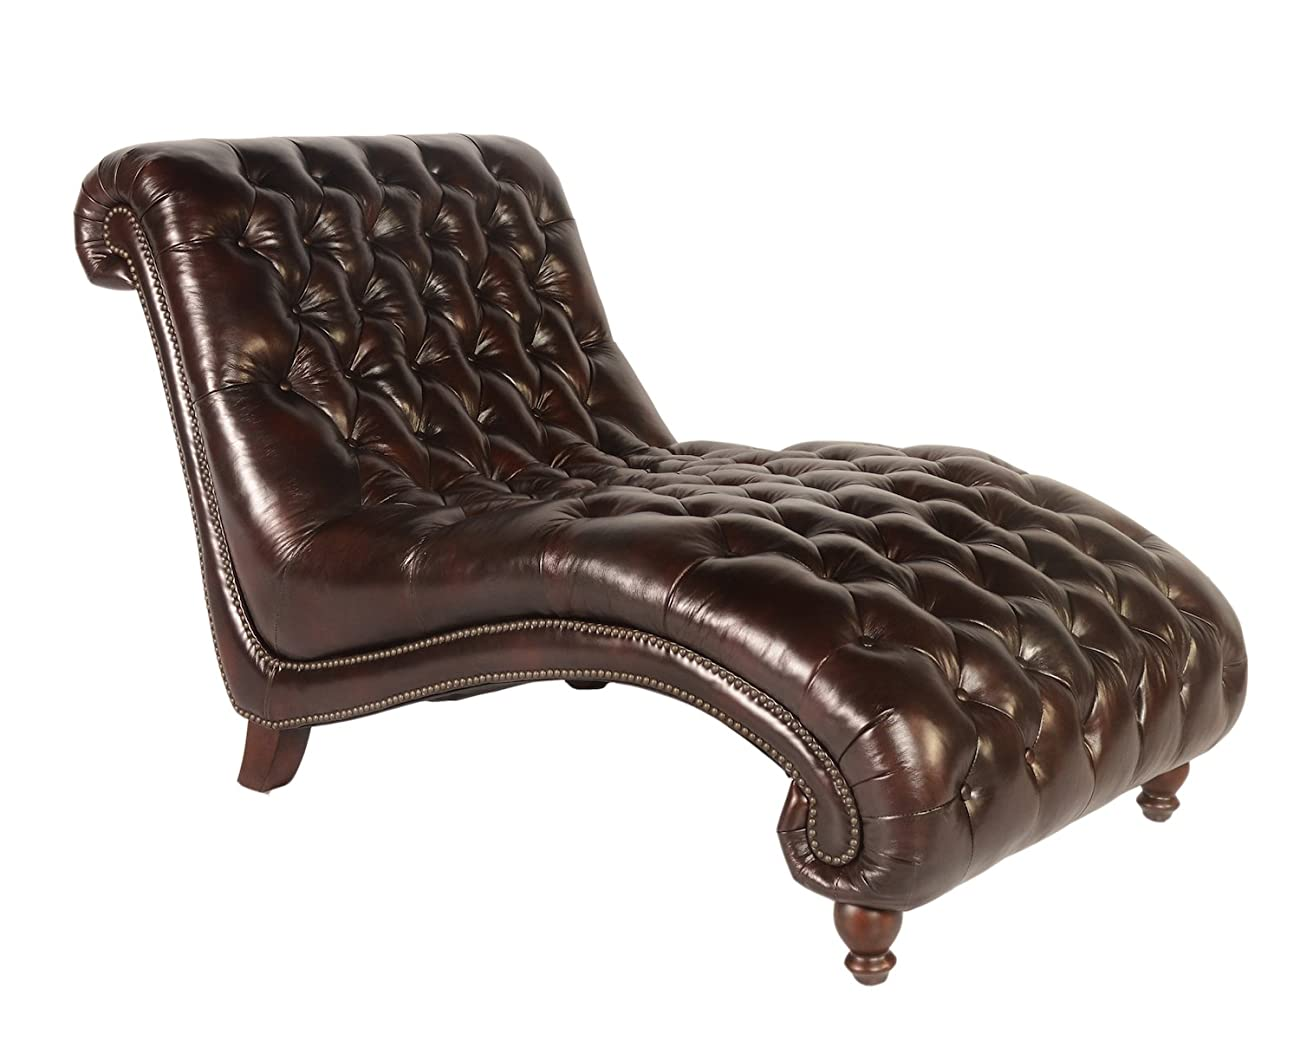 Lazzaro C3988 Double Chaise in Vintage Toberlone Leather 0